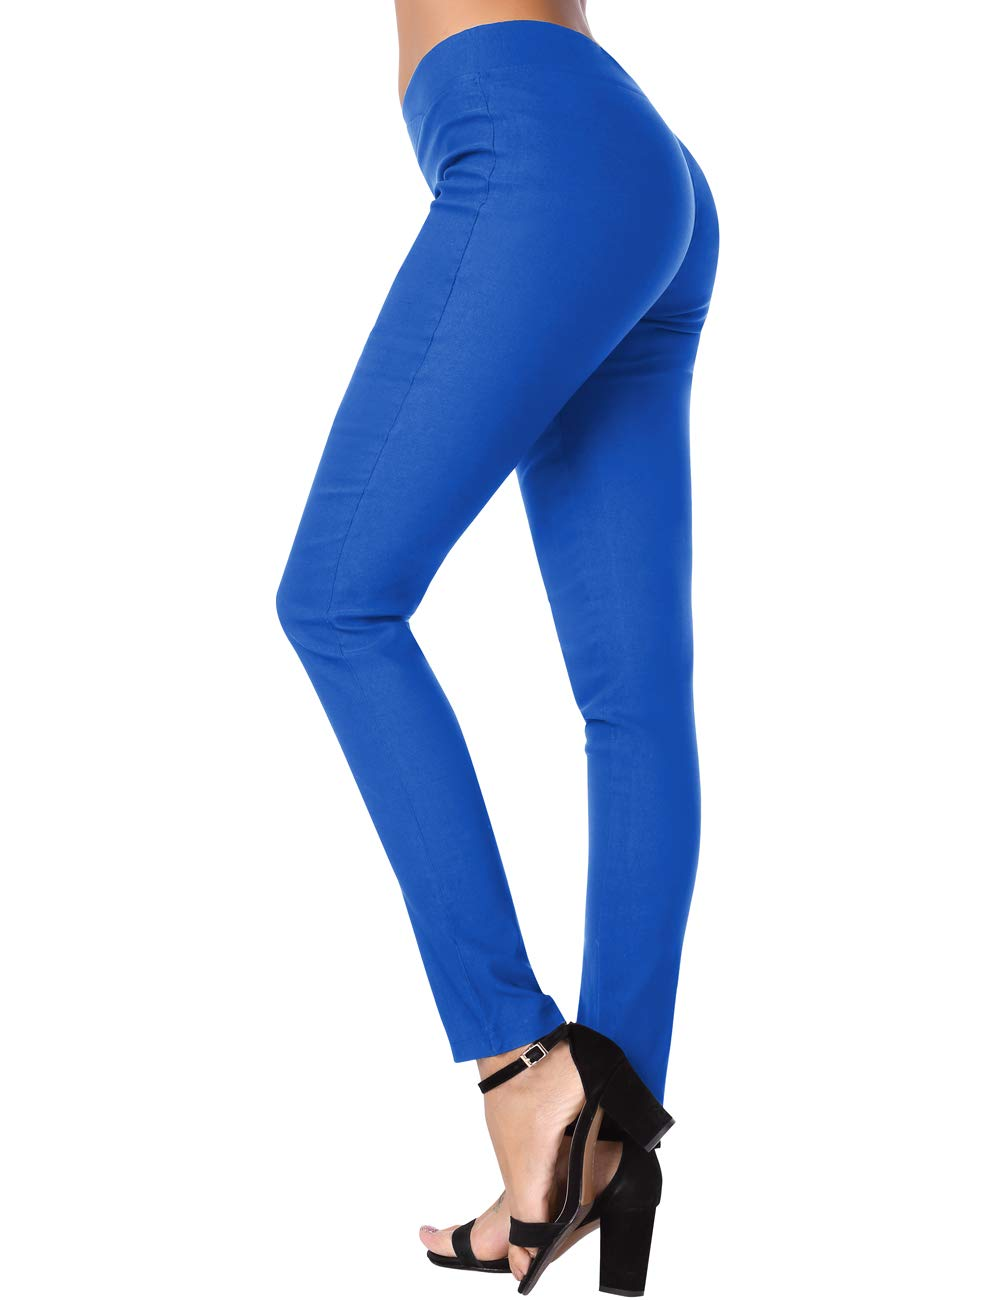 Slim Pants for Women, DJT FASHION Women's Stretchy Trousers Solid Skinny Jeggings Business Office Wear Blue XL